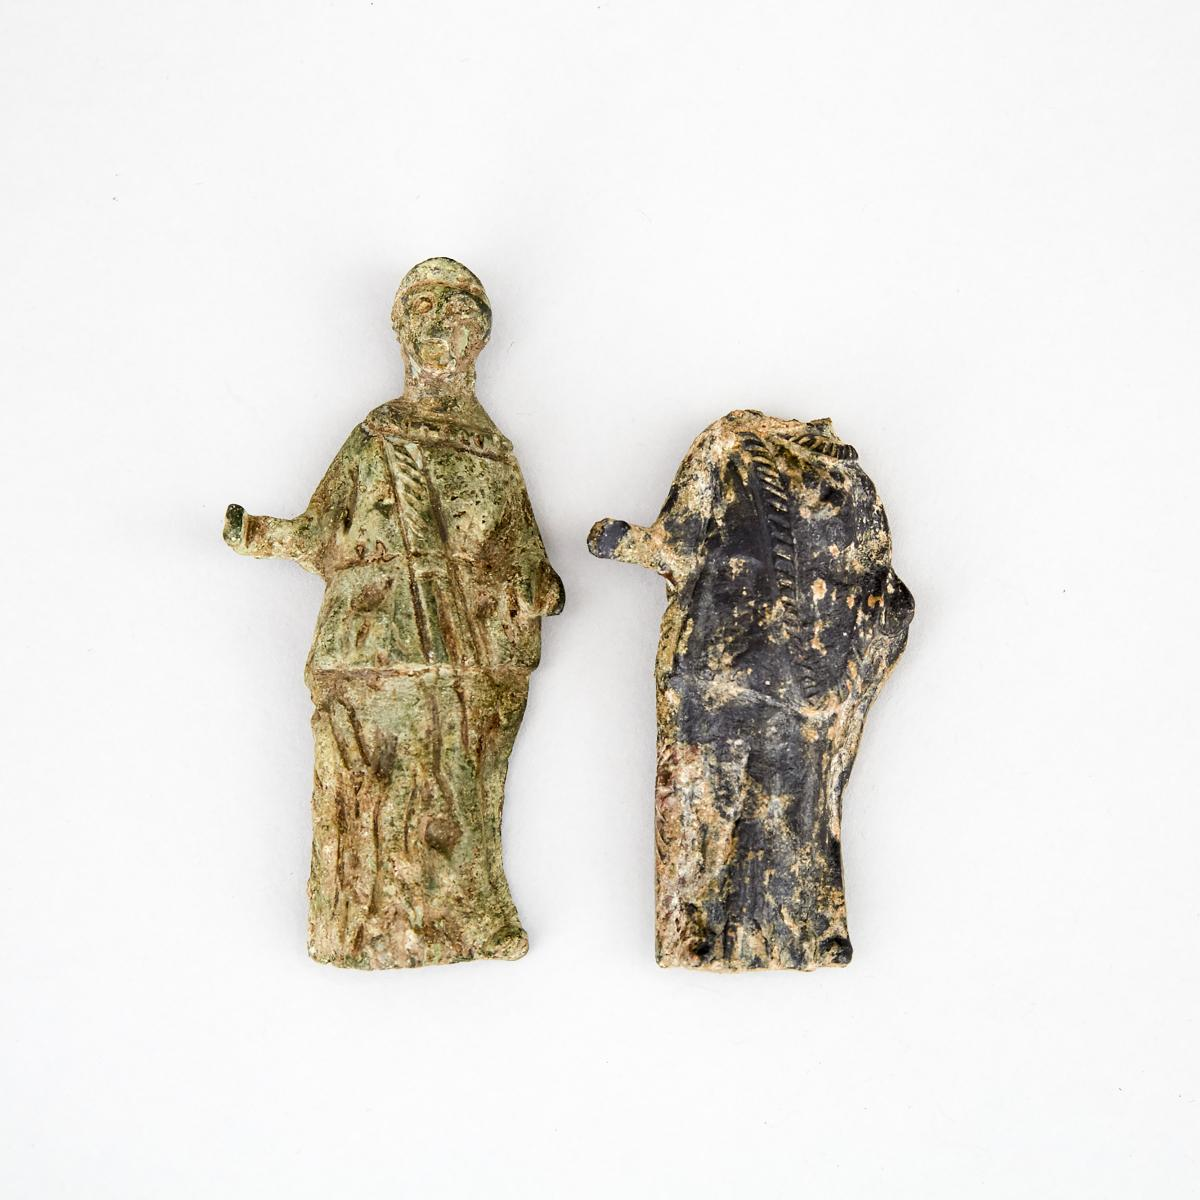 Two Roman Bronze Figures of Athena, 1st-2nd century A.D., height 3.75 in — 9.5 cm